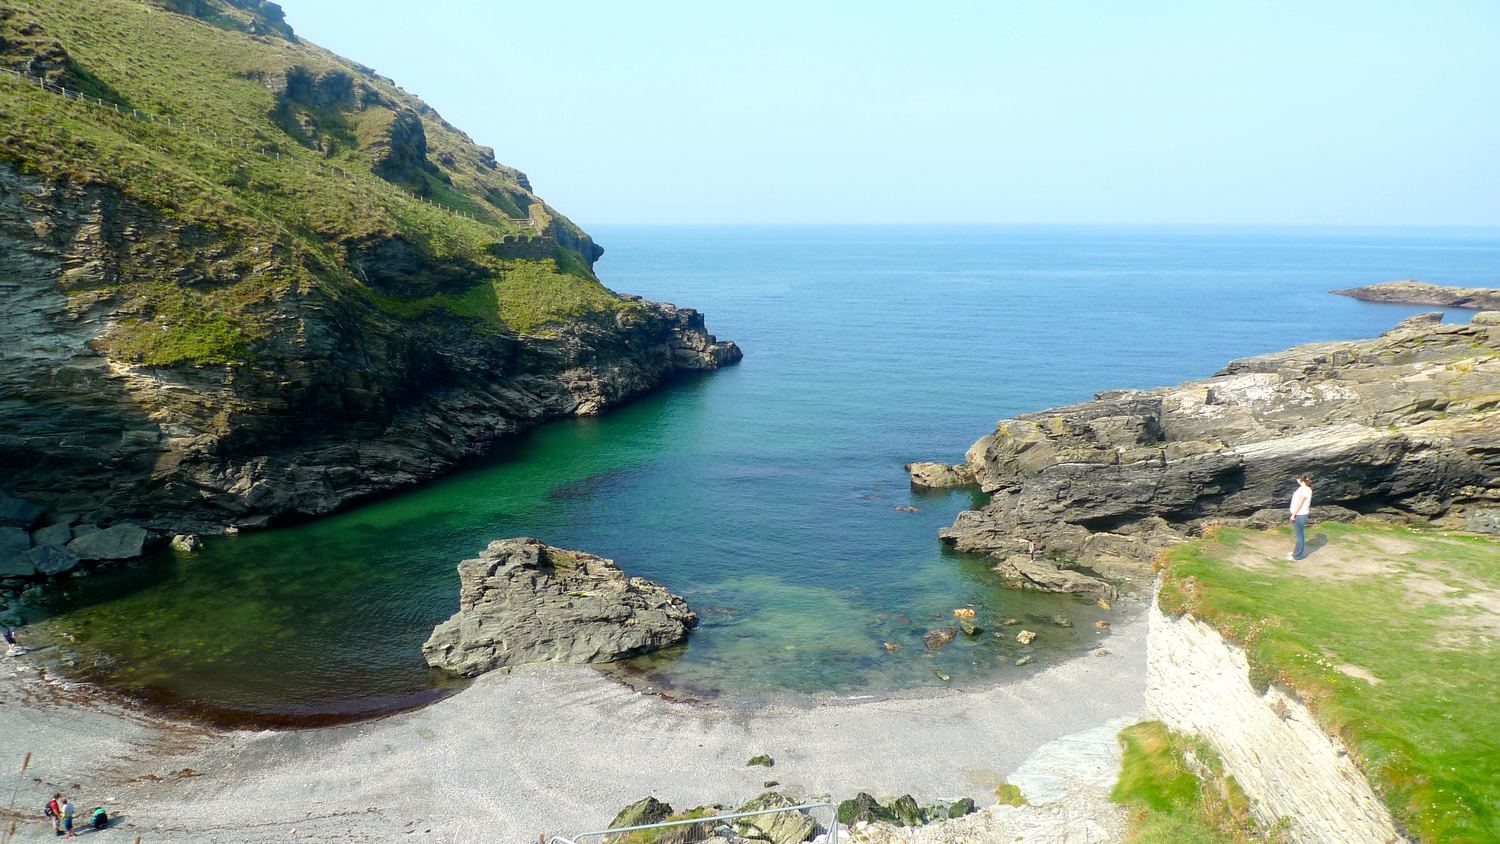 Sun on Saturday: Barras Nose, lashings of ginger beer and Tintagel Castle